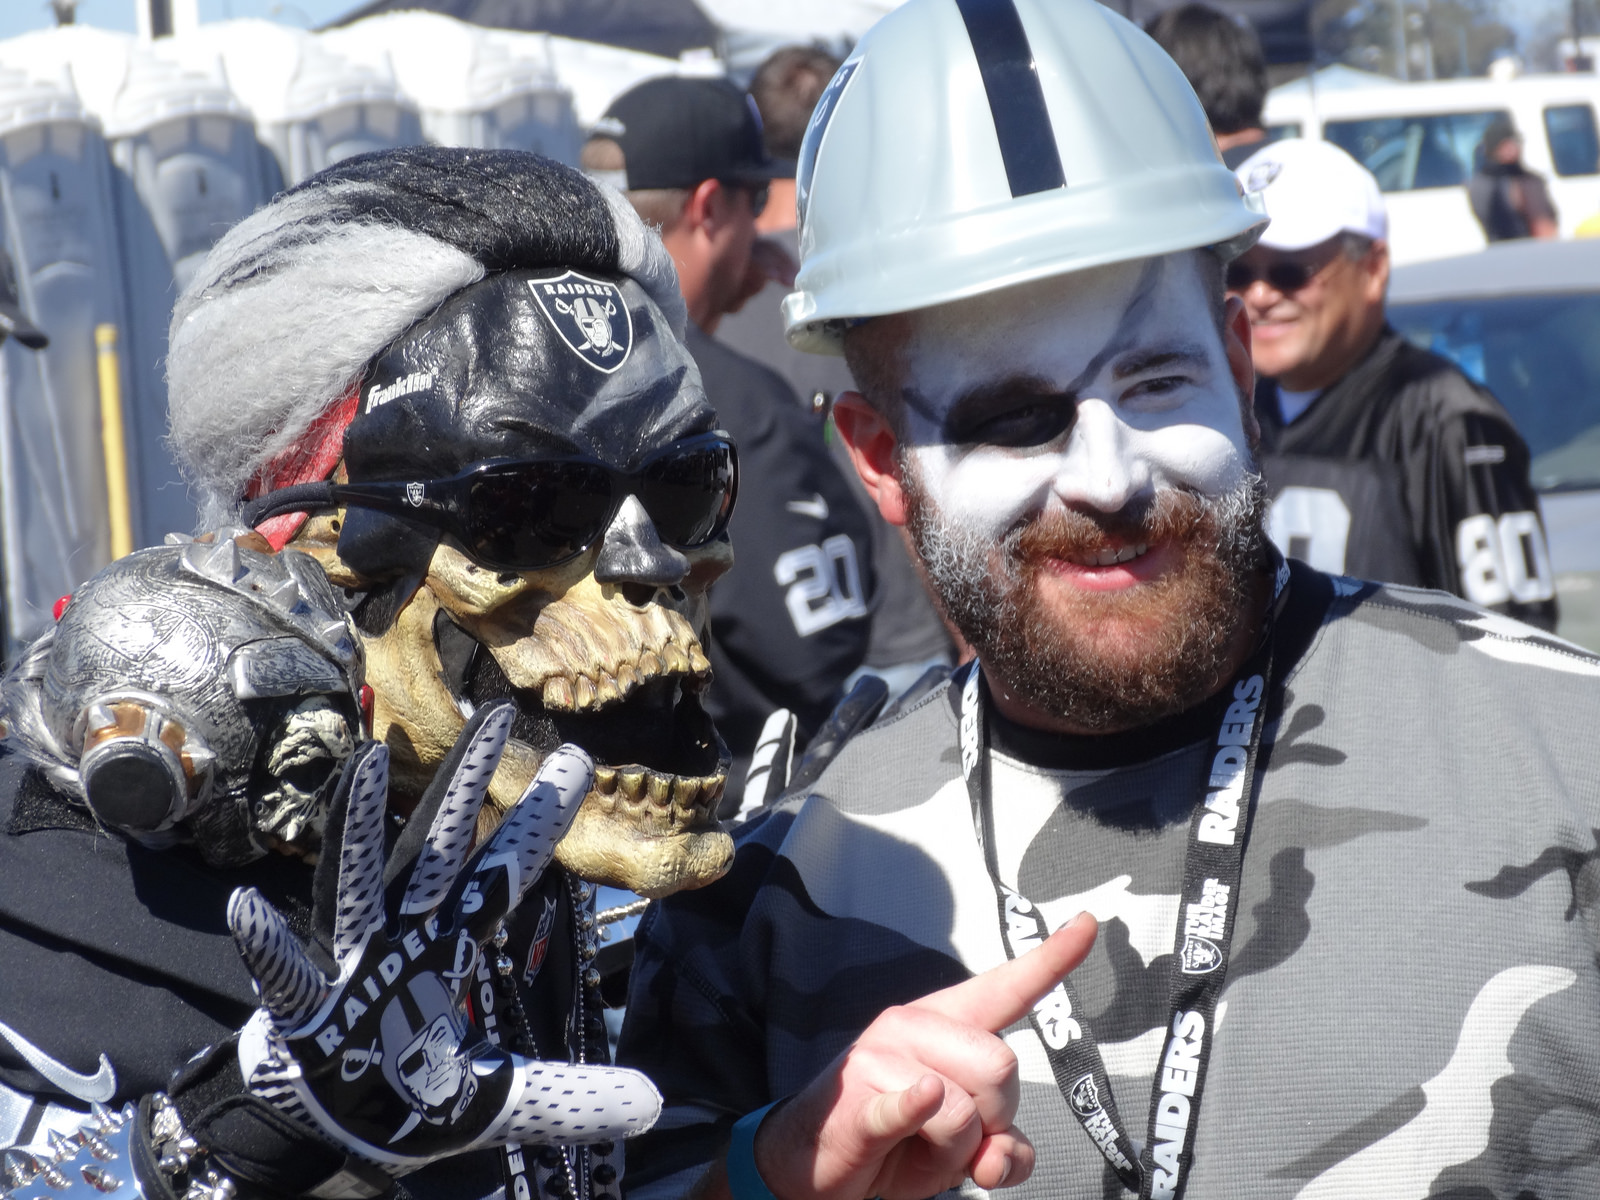 Oakland Raiders fans in costume at tailgate lot